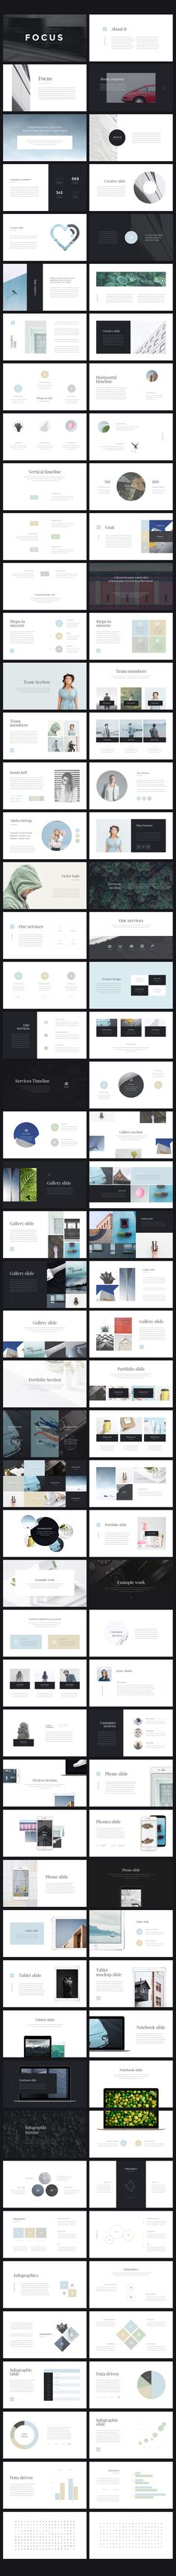 Focus PowerPoint Presentation by Entersge on @creativemarket